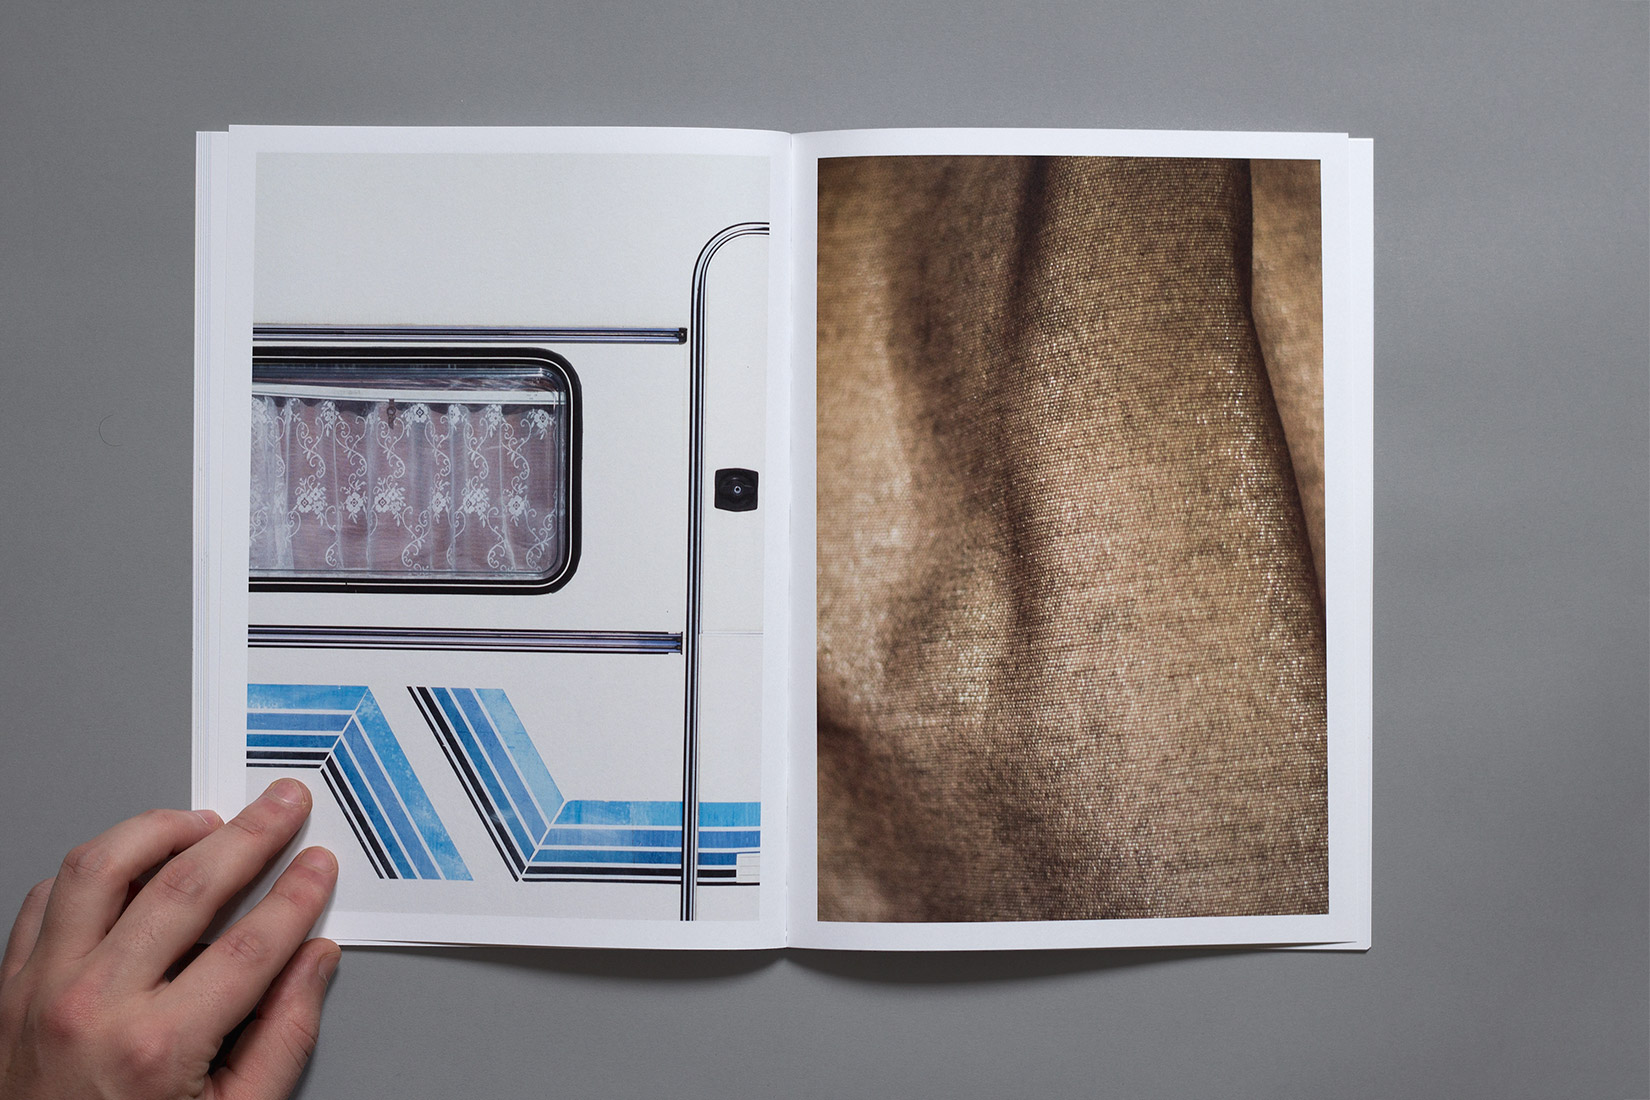 Les Brenets - Camping, detail, caravan, window, lines, geometry, curtains, book, photography